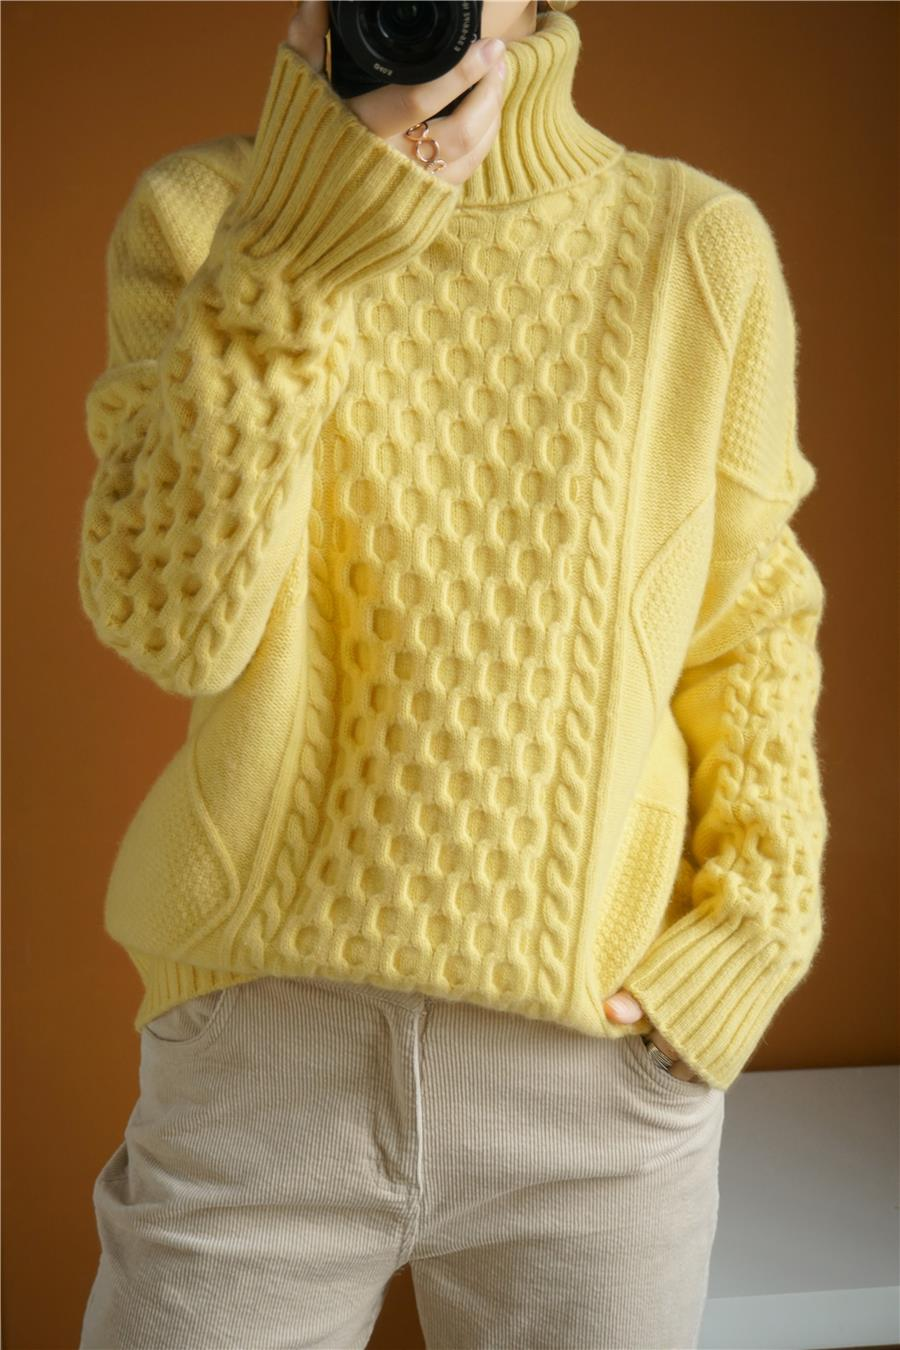 2020 Pullover Feminino Women's Winter Sweater Turtleneck Cashmere Women Pullover Pure Color Heavy Thick Twisted Flower New 100% enlarge